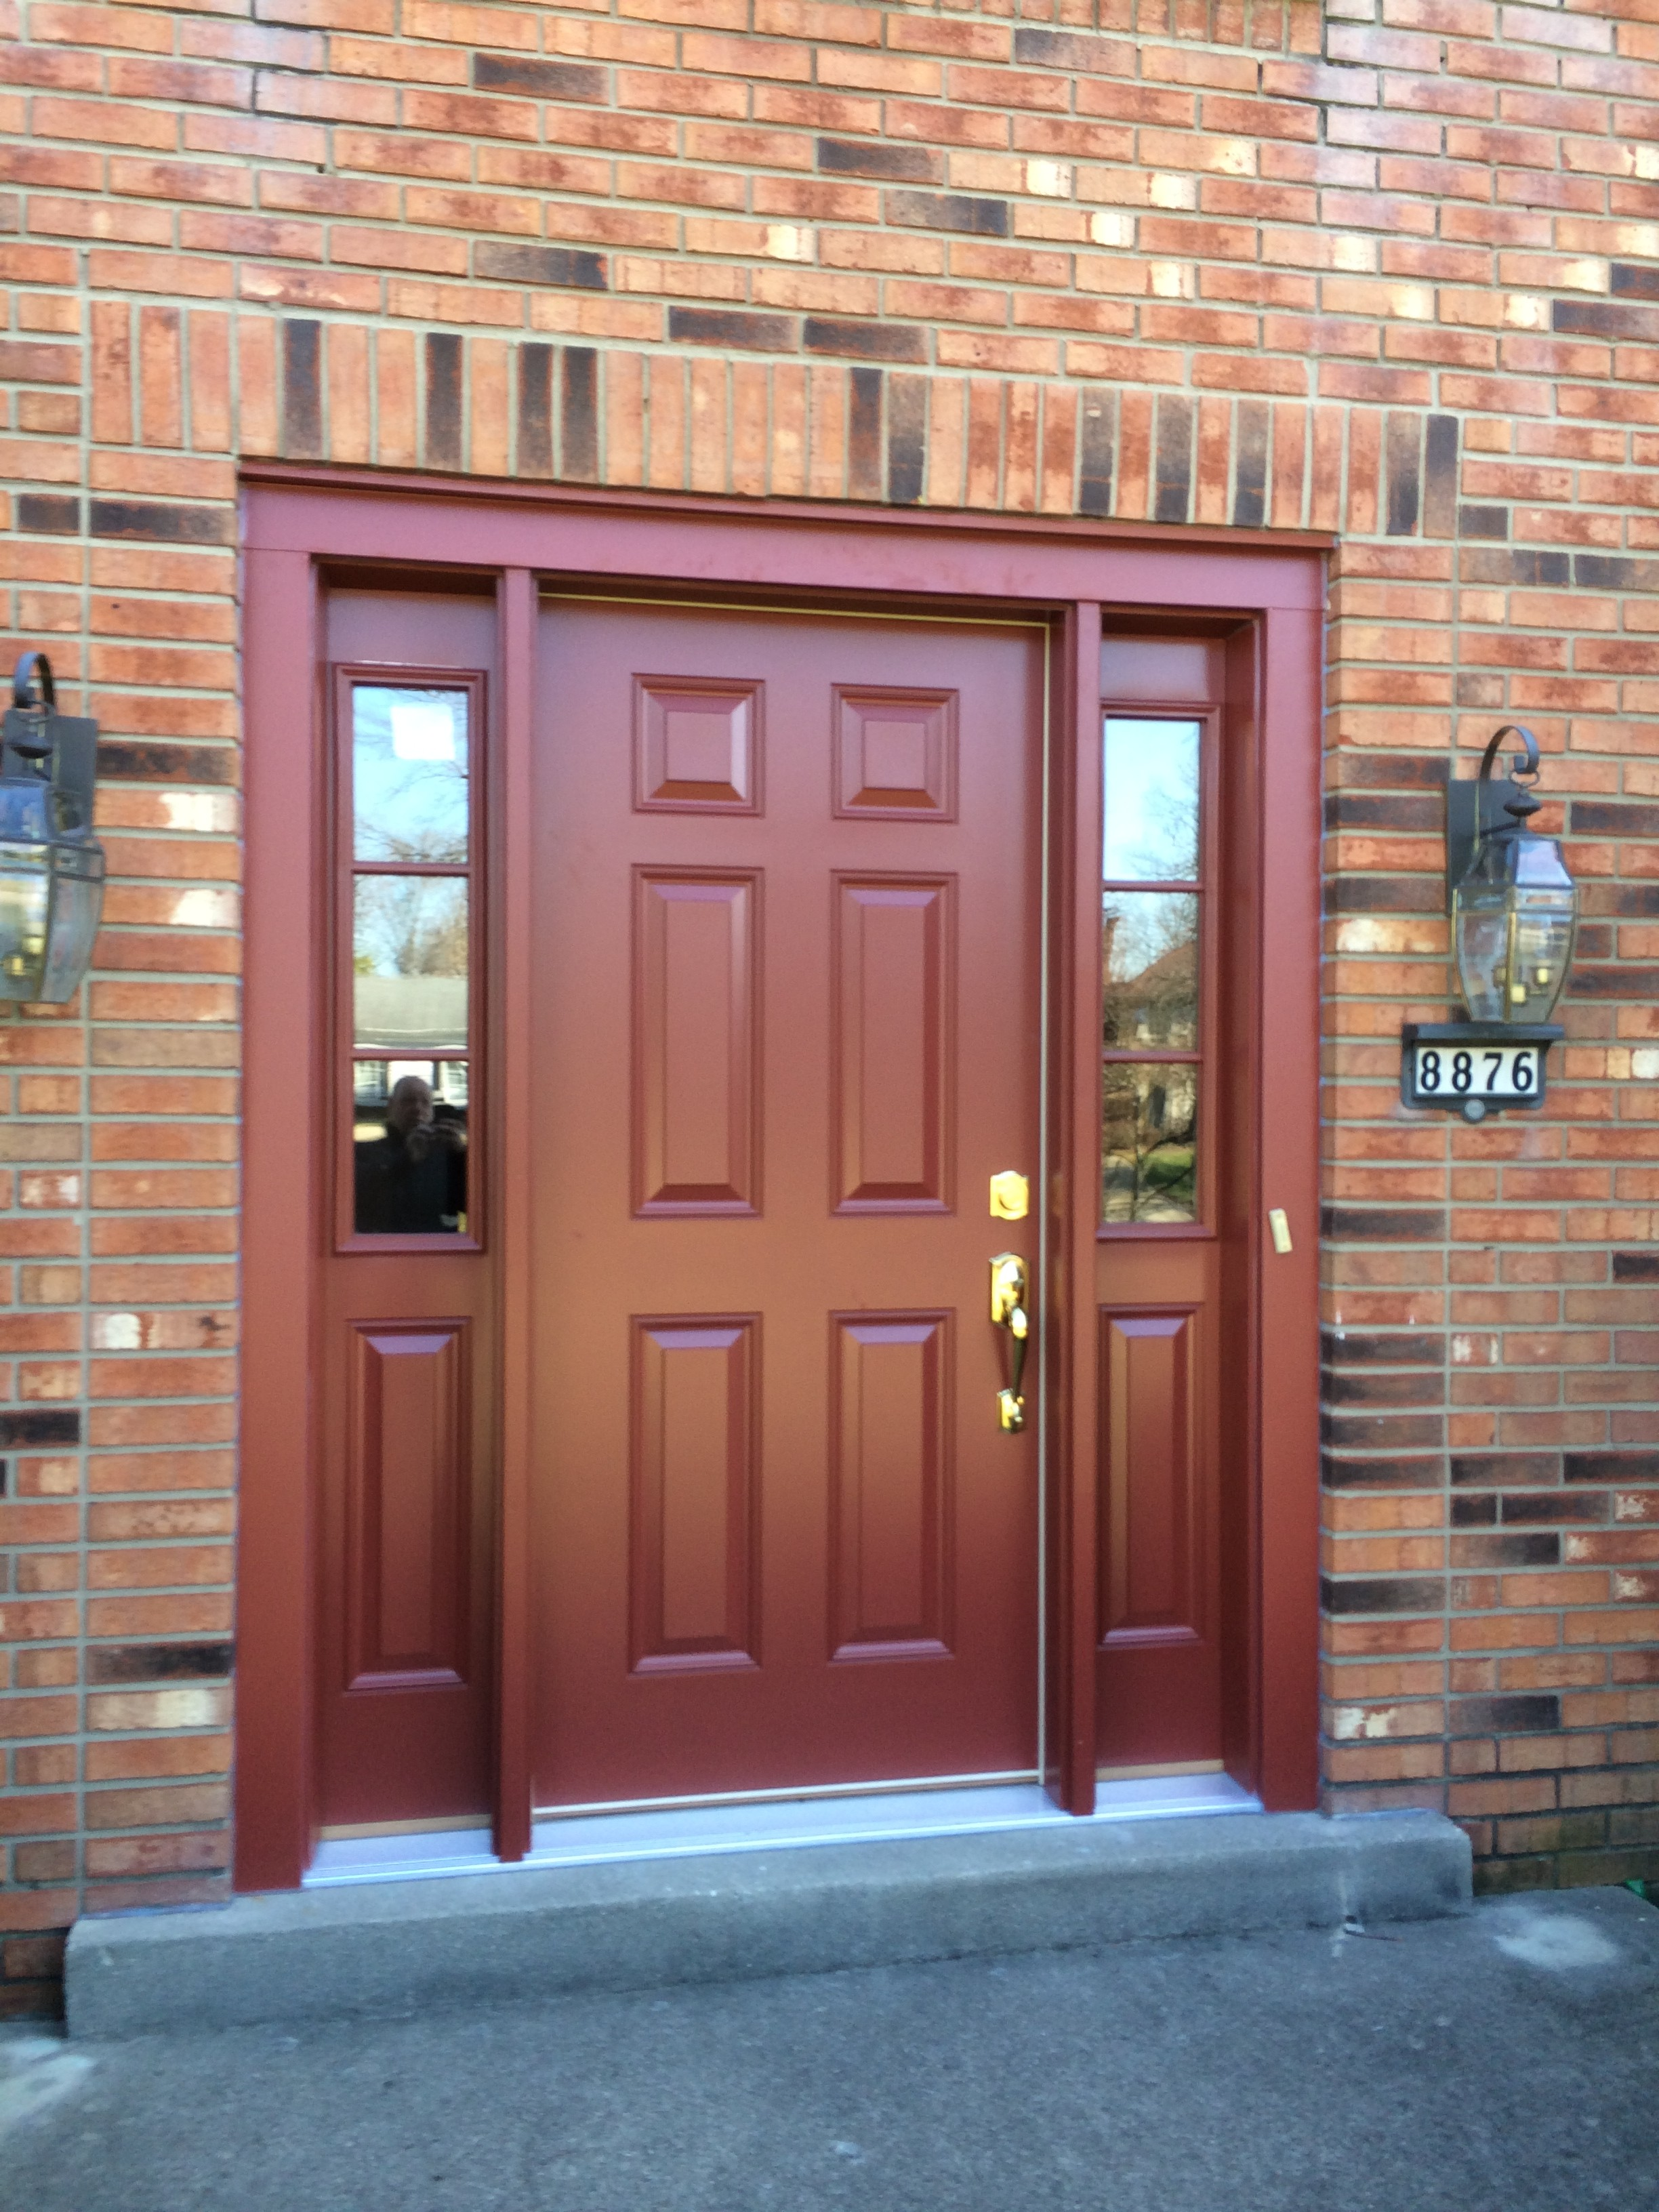 cincinnati window design in west chester oh 45069